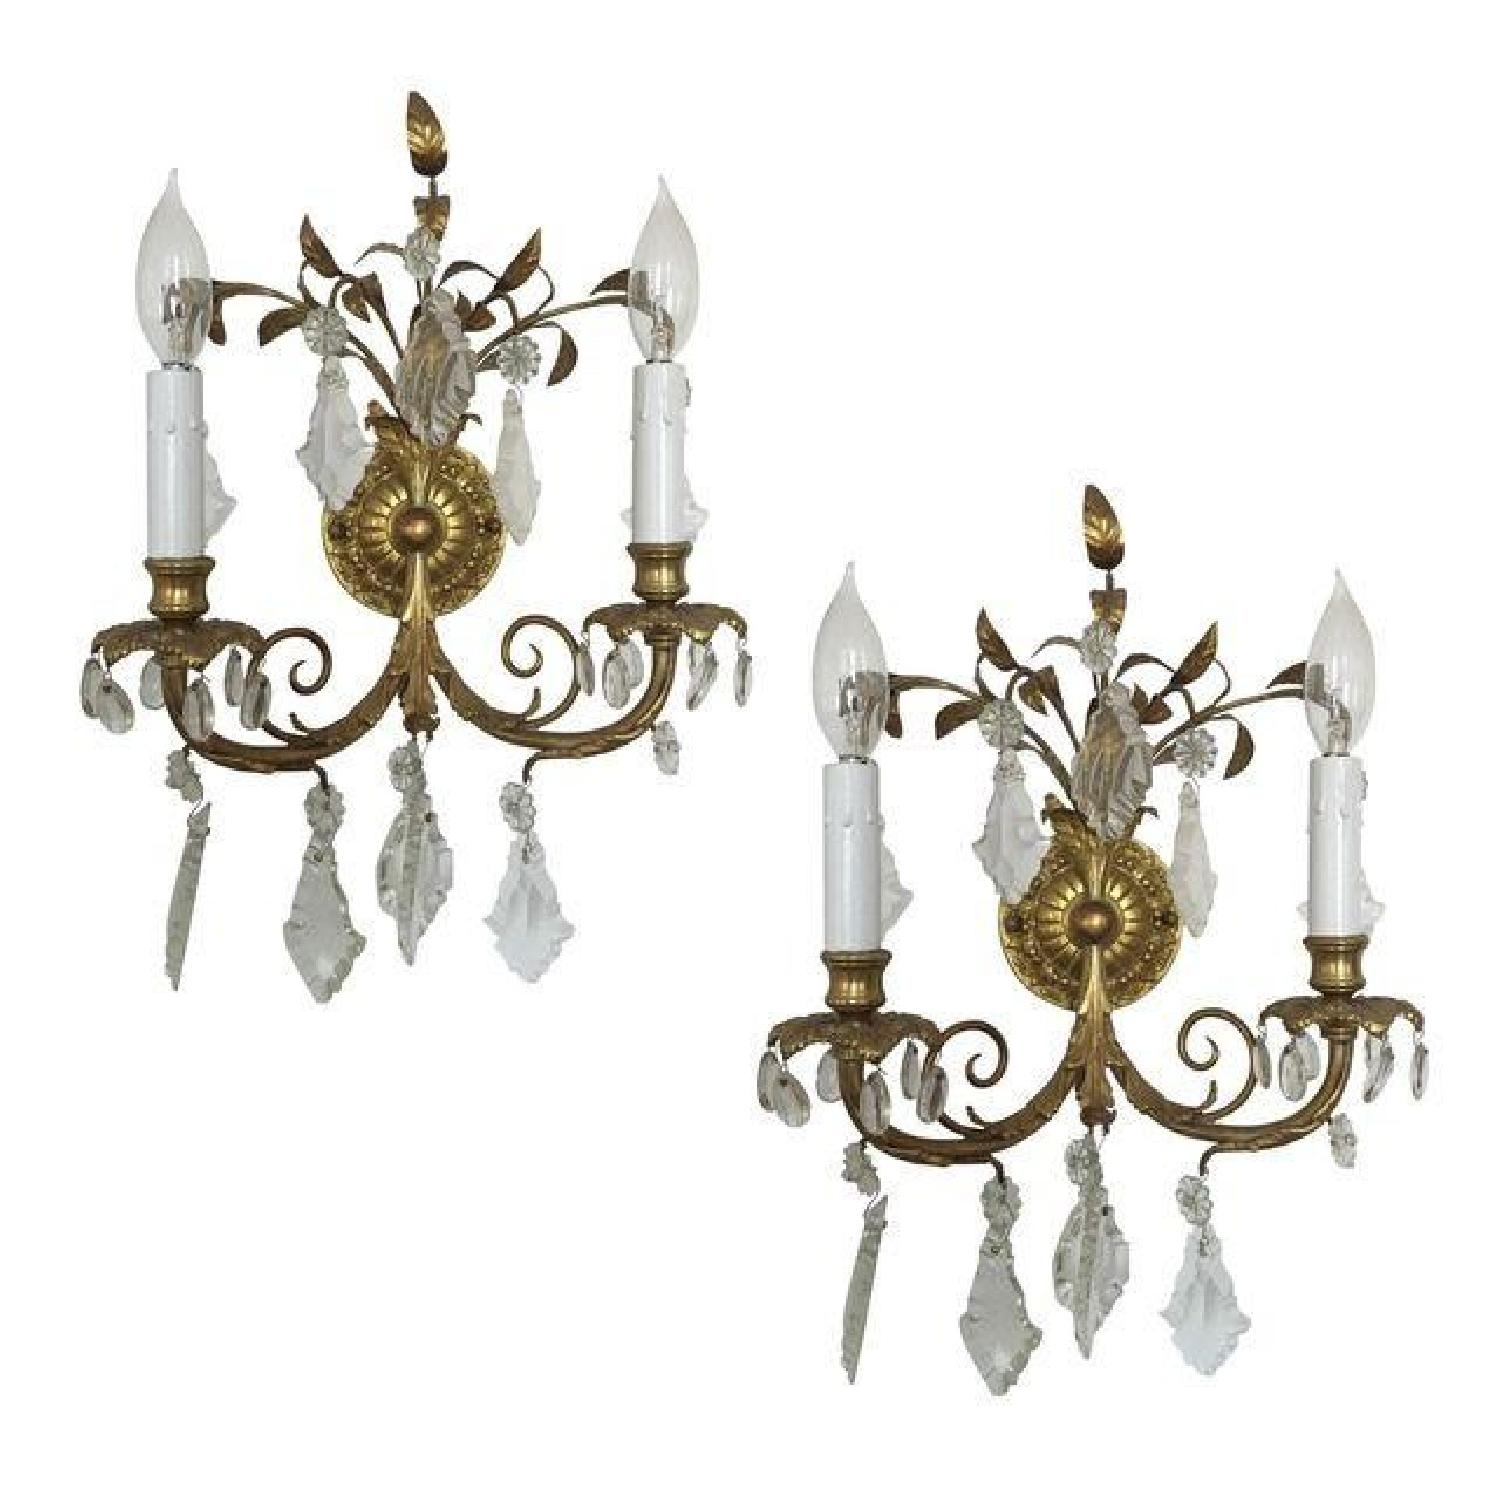 Antique French Wall Sconces - image-4